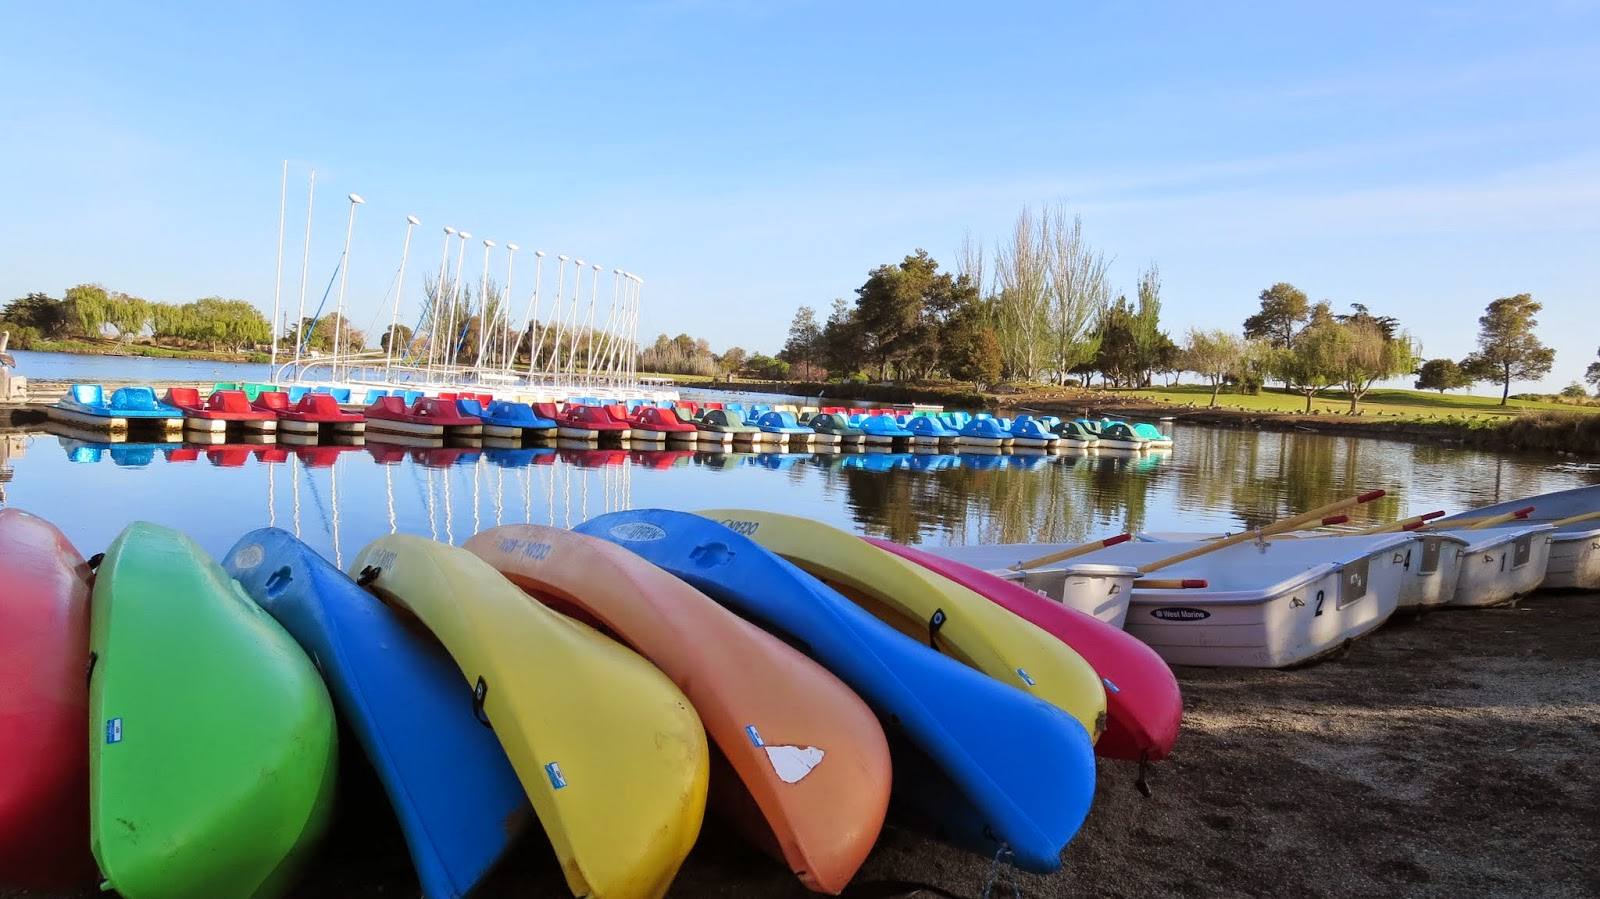 kayaks in Shoreline Park in Mountain View California